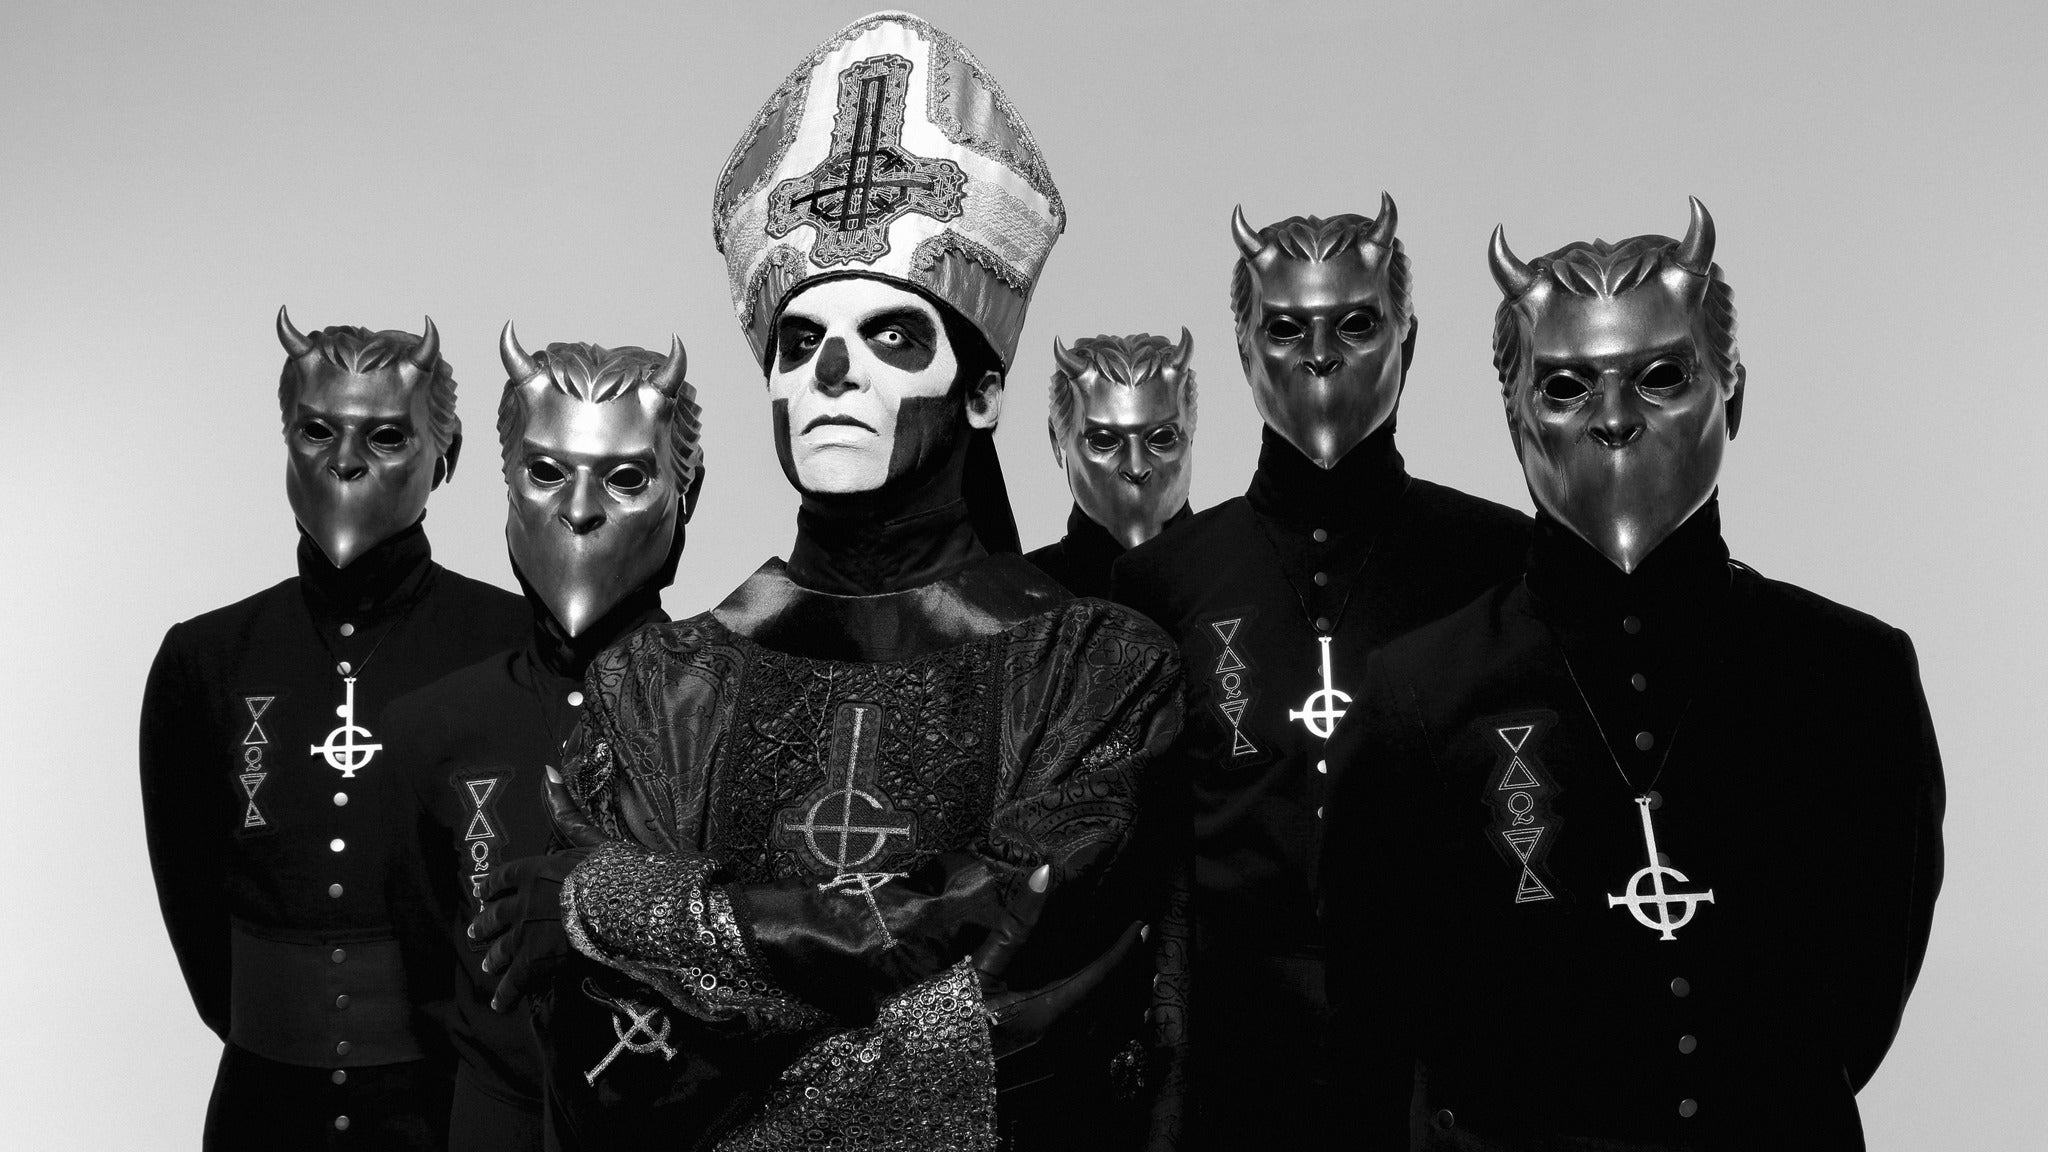 AN EVENING WITH GHOST at Riverside Municipal Auditorium